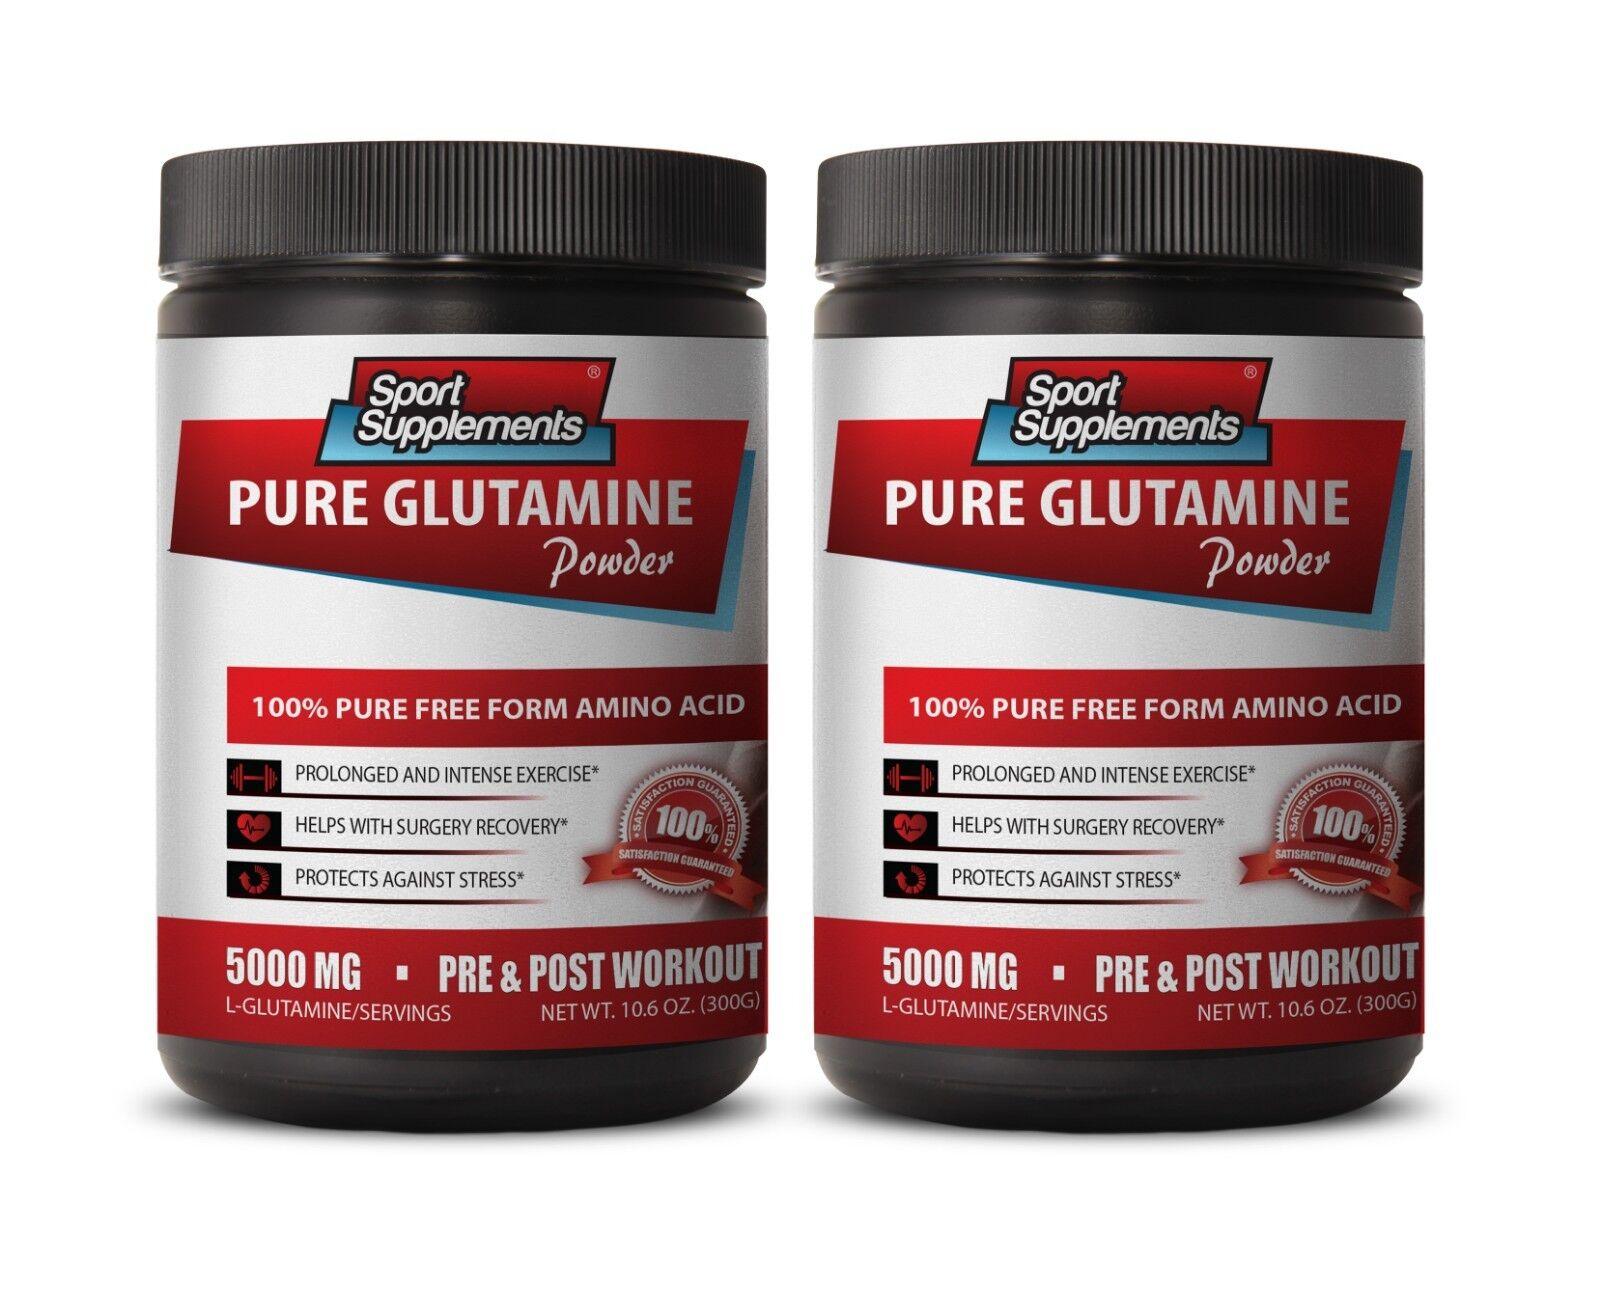 Nitric Oxide Oxide Oxide - Pure Glutamine Powder 5000mg -  Improved Mental Clarity & Focus 2 a700bd